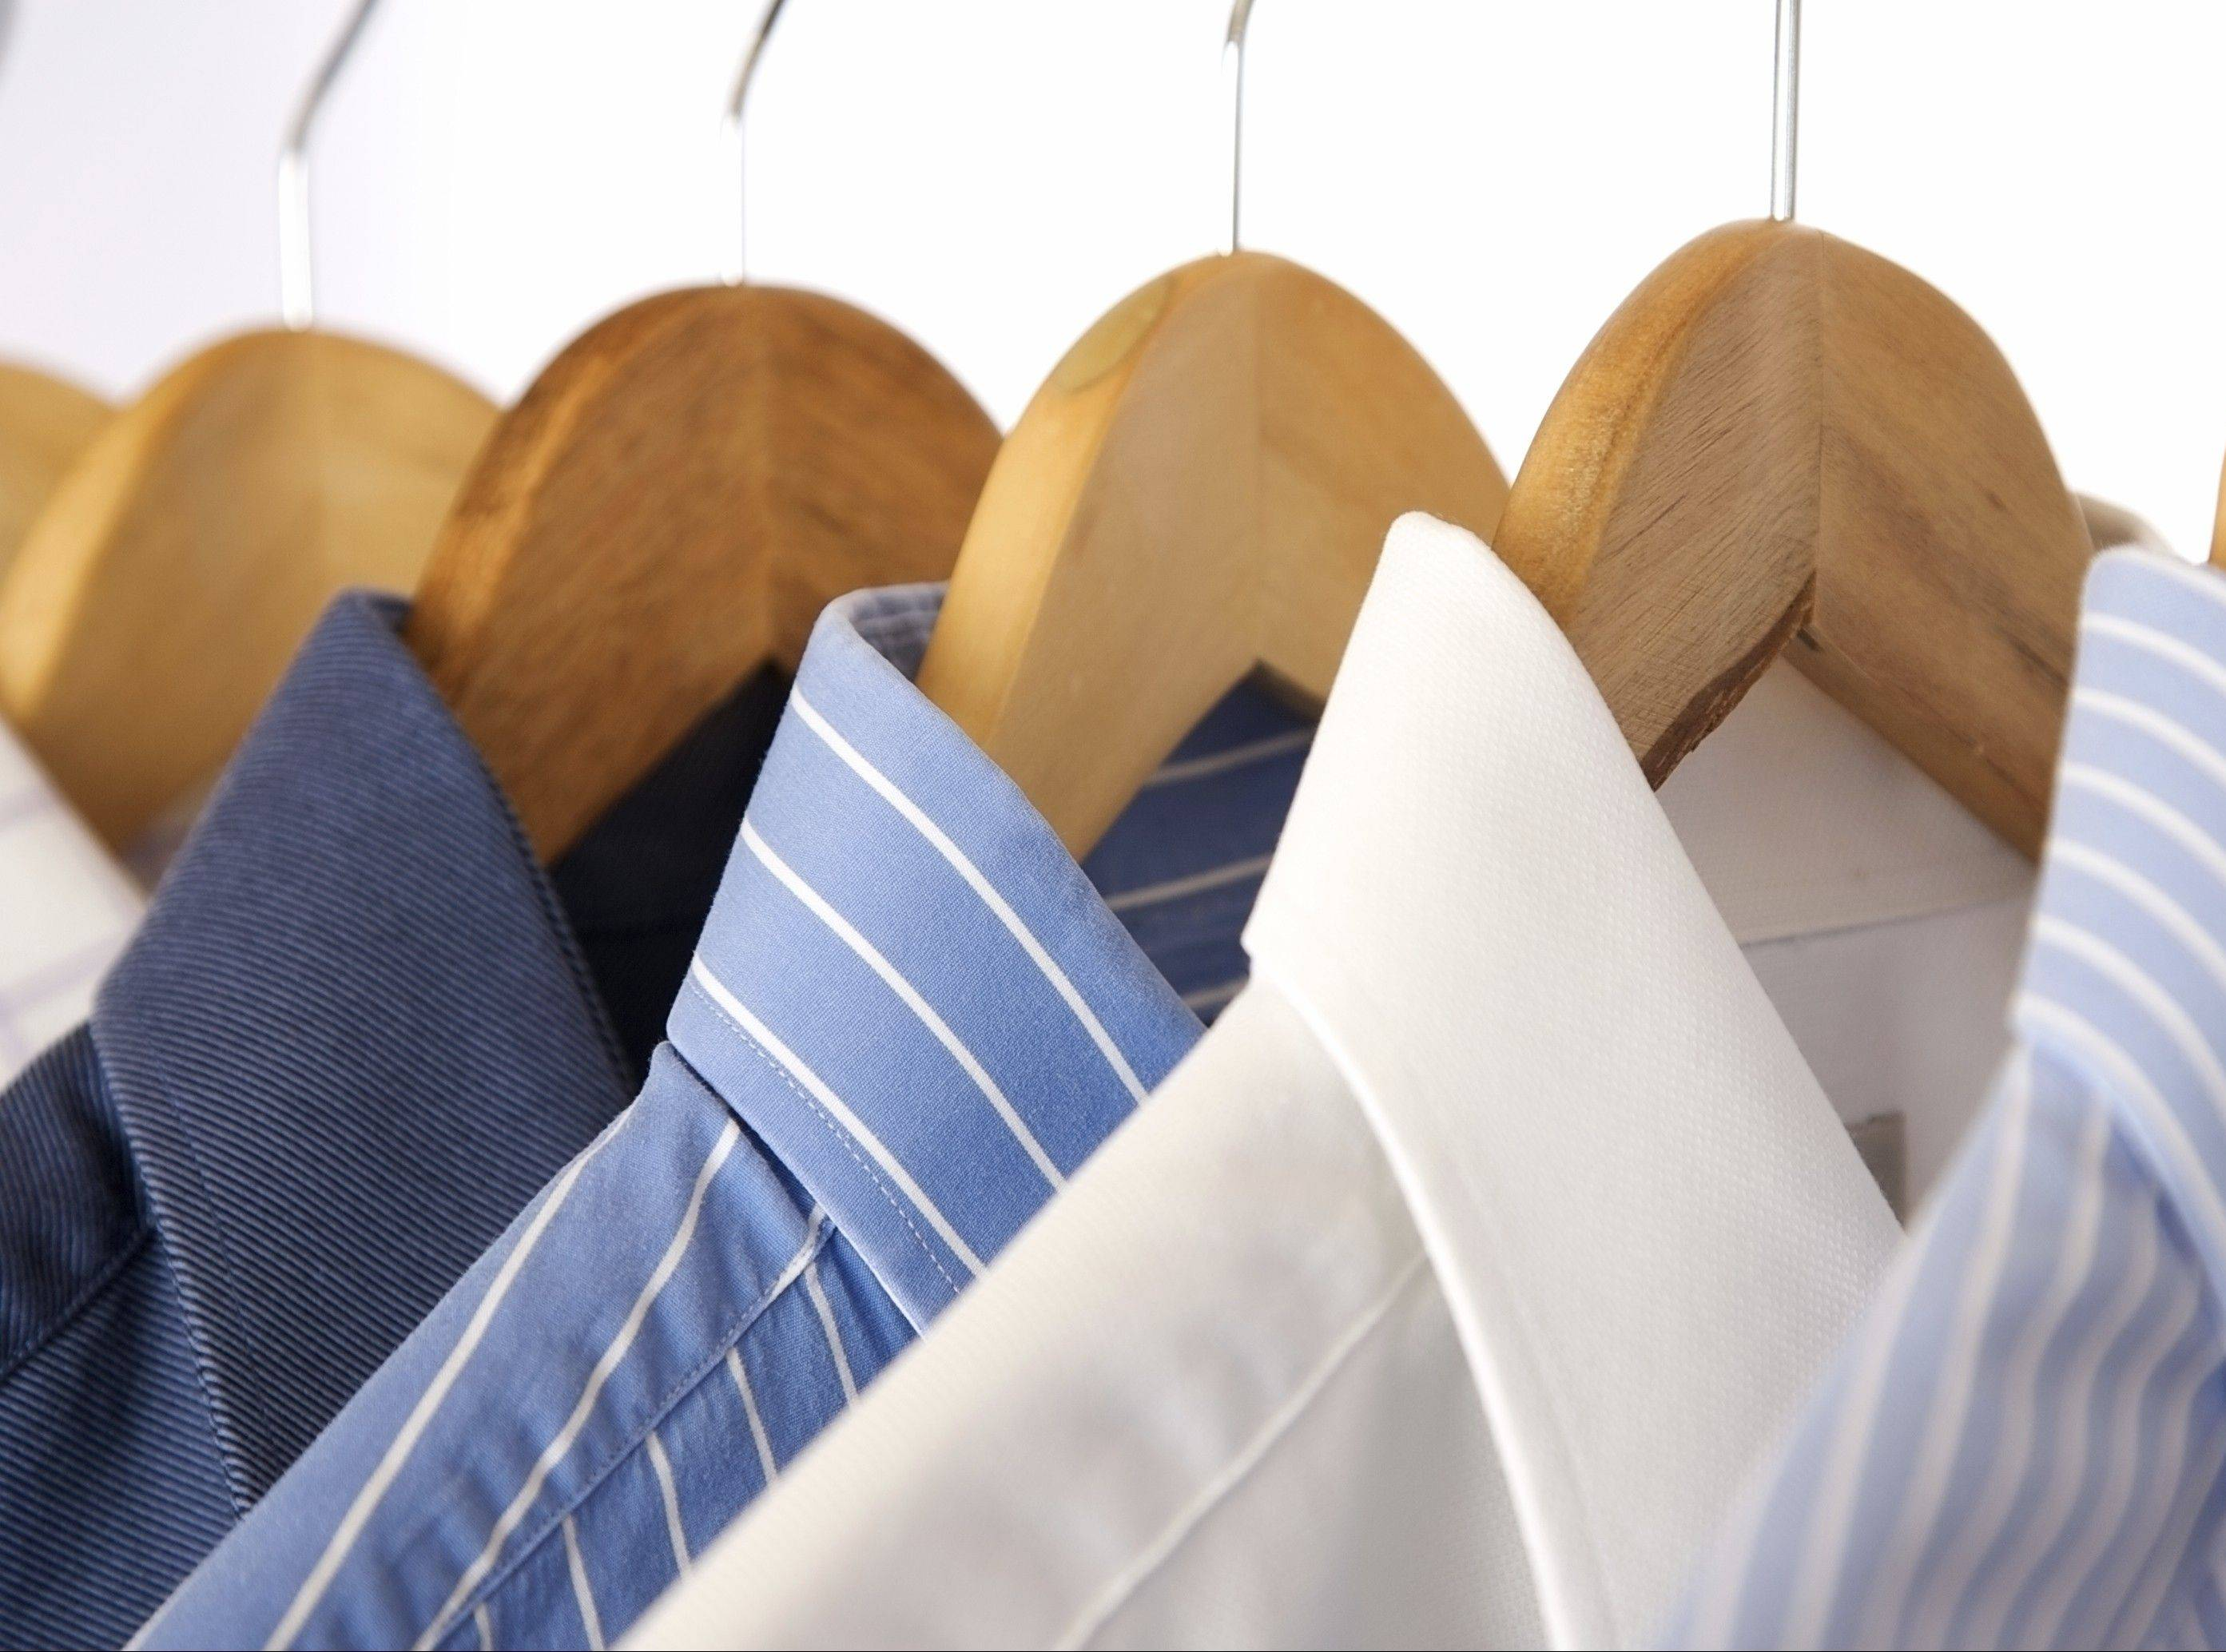 A new kind of dry cleaning may be safer for you and the environment.